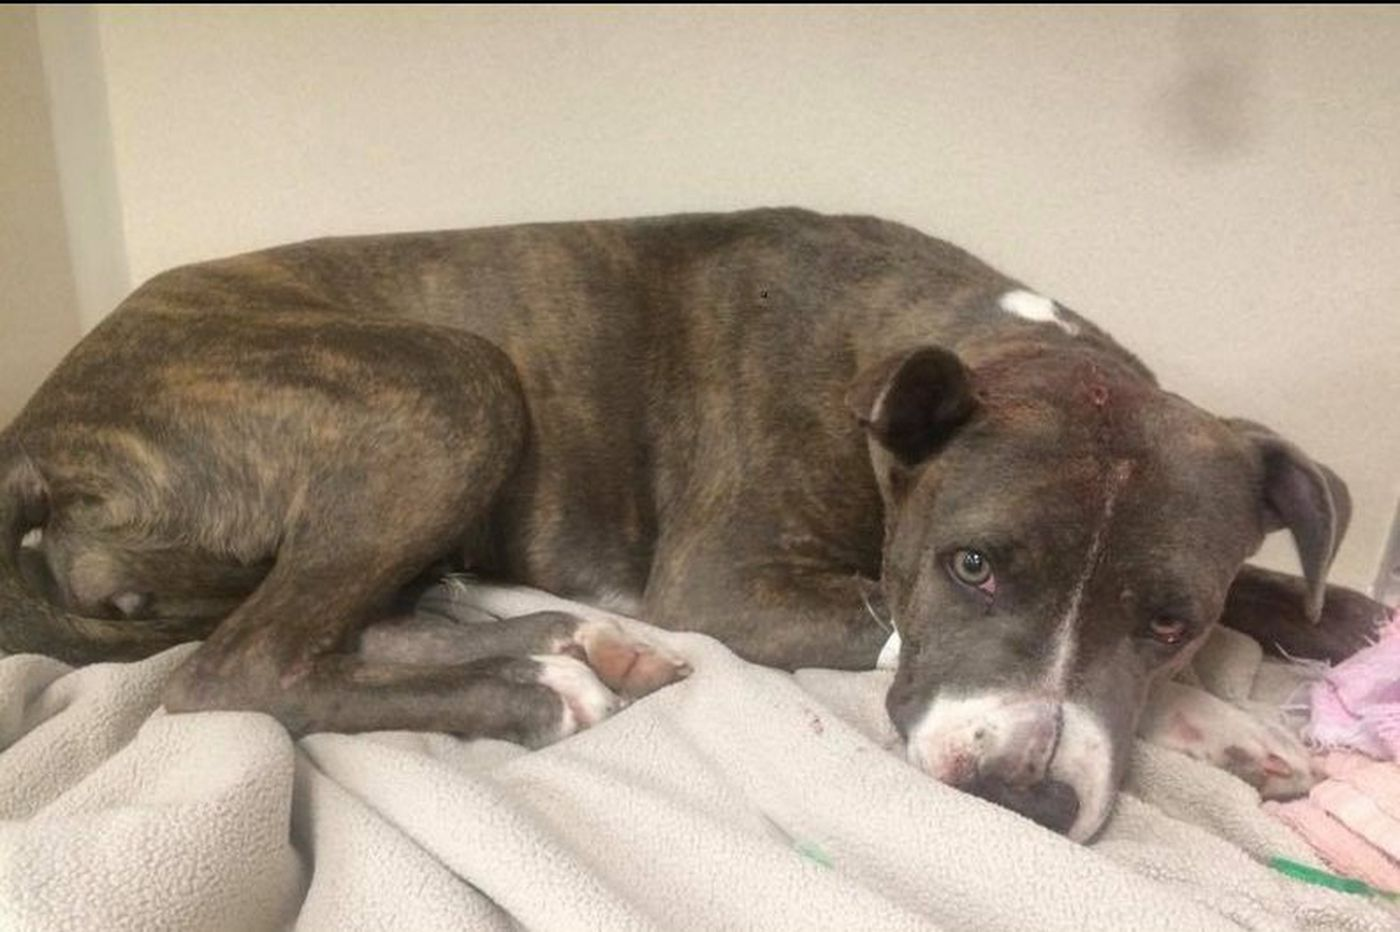 Animal lovers raise $8K to rescue abused pit bull